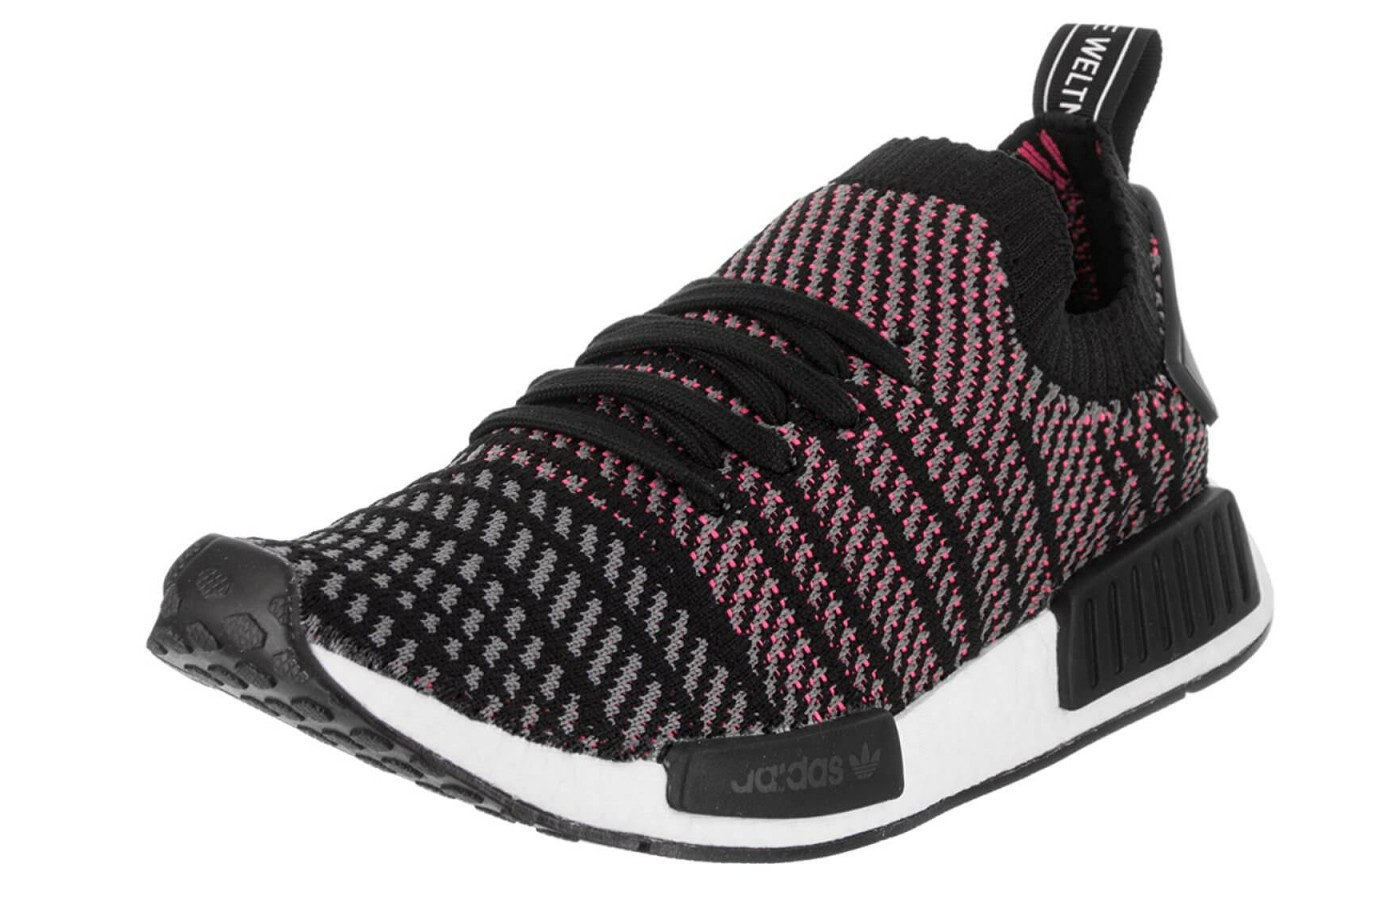 798d3ffb3 The Adidas NMD R1 Stlt Primeknit features a Primeknit upper ...